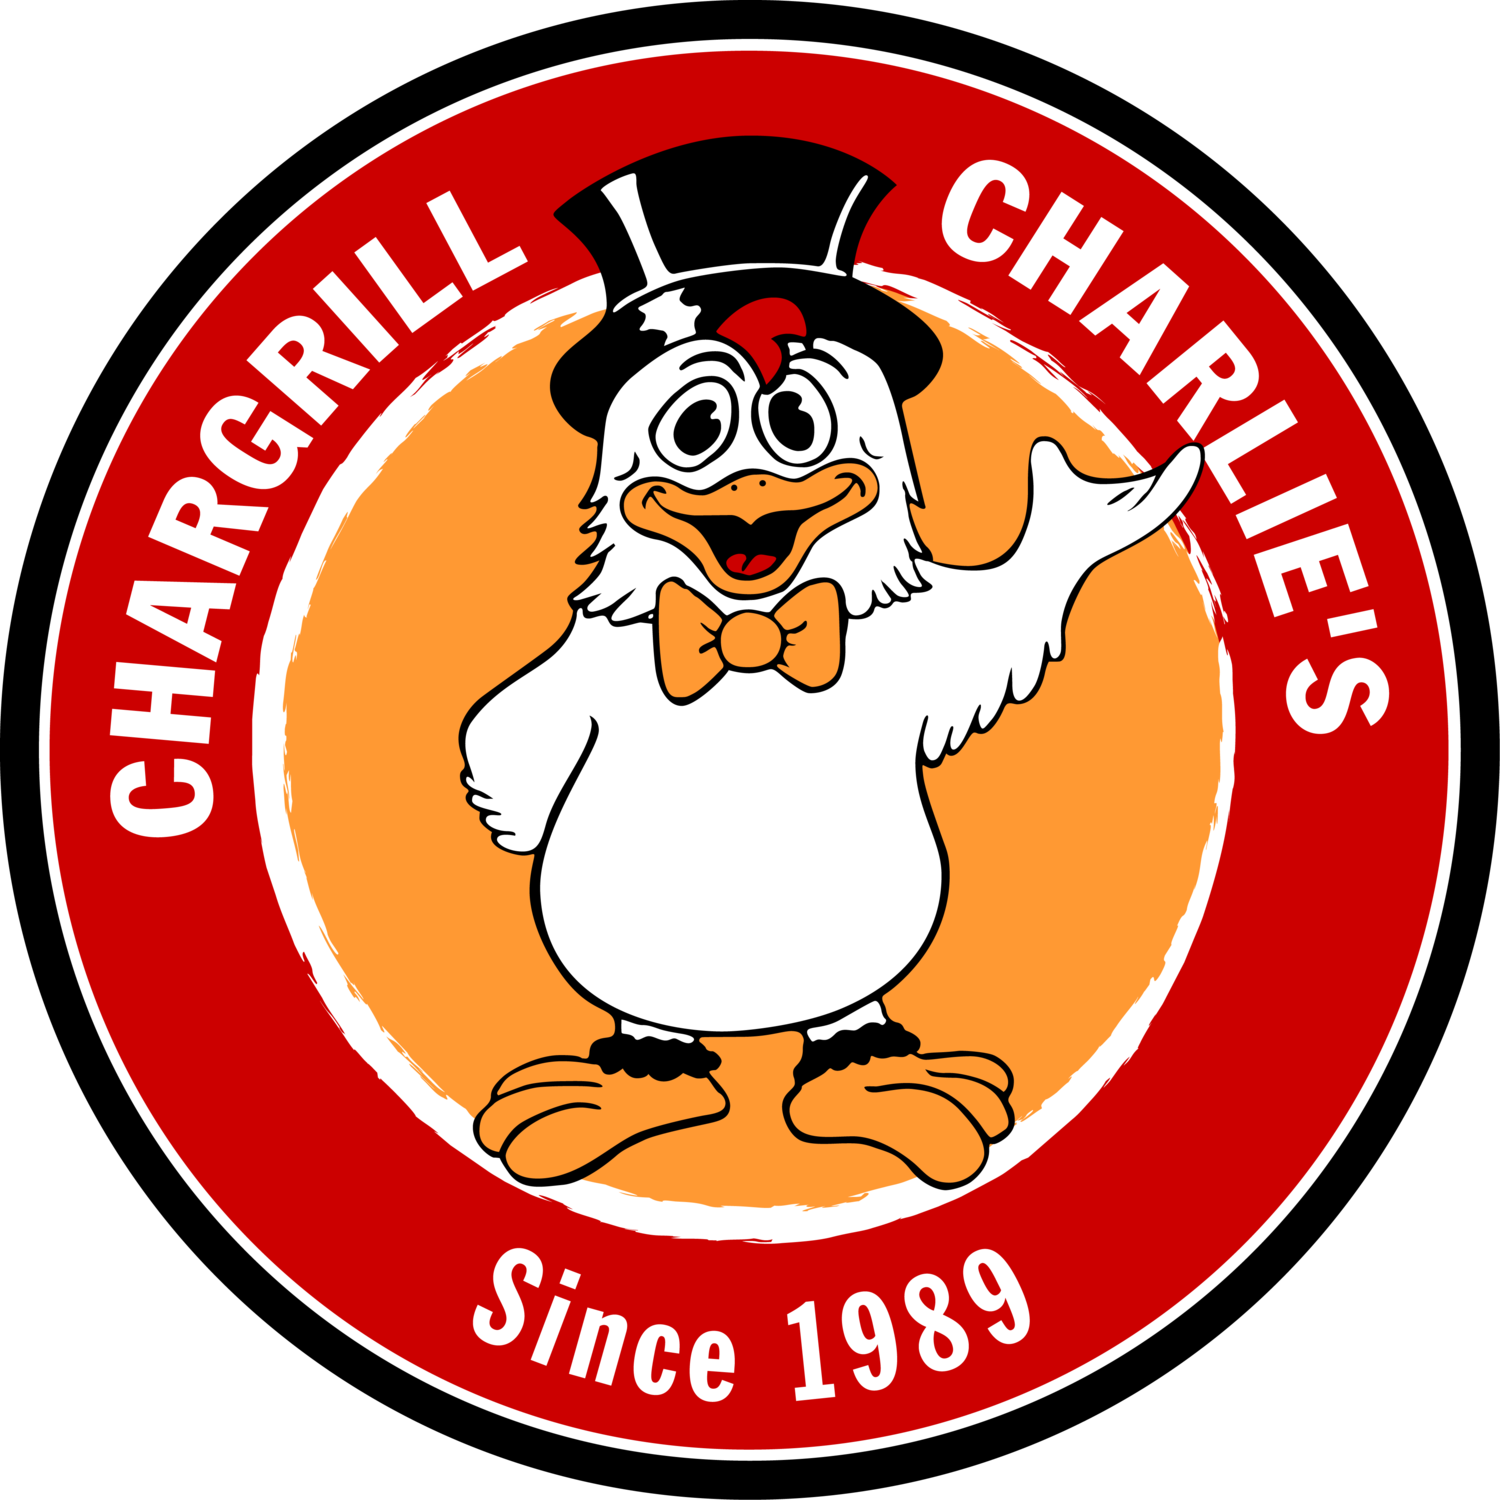 Chargrill Charlie S